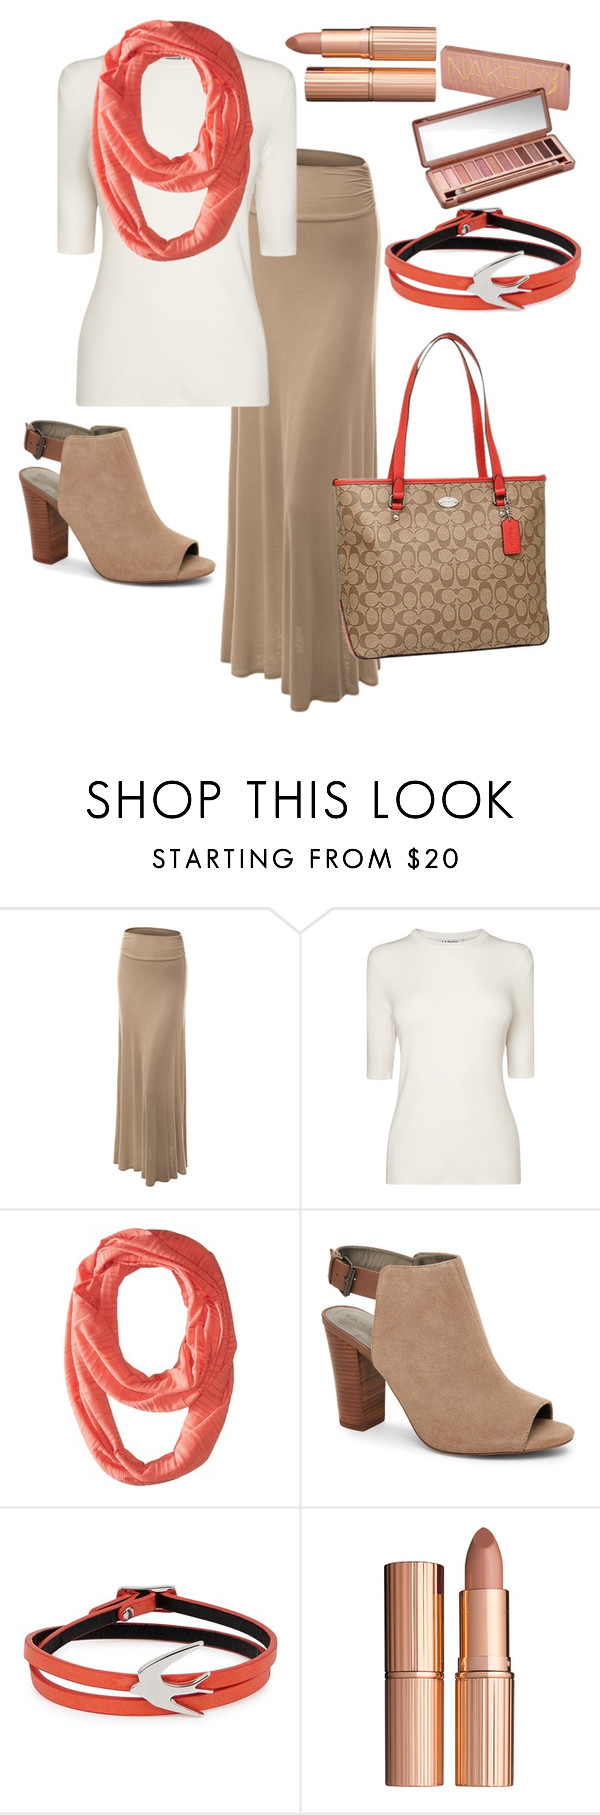 """""""fall-Coach 2016"""" by jolene-mcelraft on Polyvore featuring LE3NO, L.K.Bennett, Columbia, Tahari, McQ by Alexander McQueen, Charlotte Tilbury, Urban Decay and Coach"""